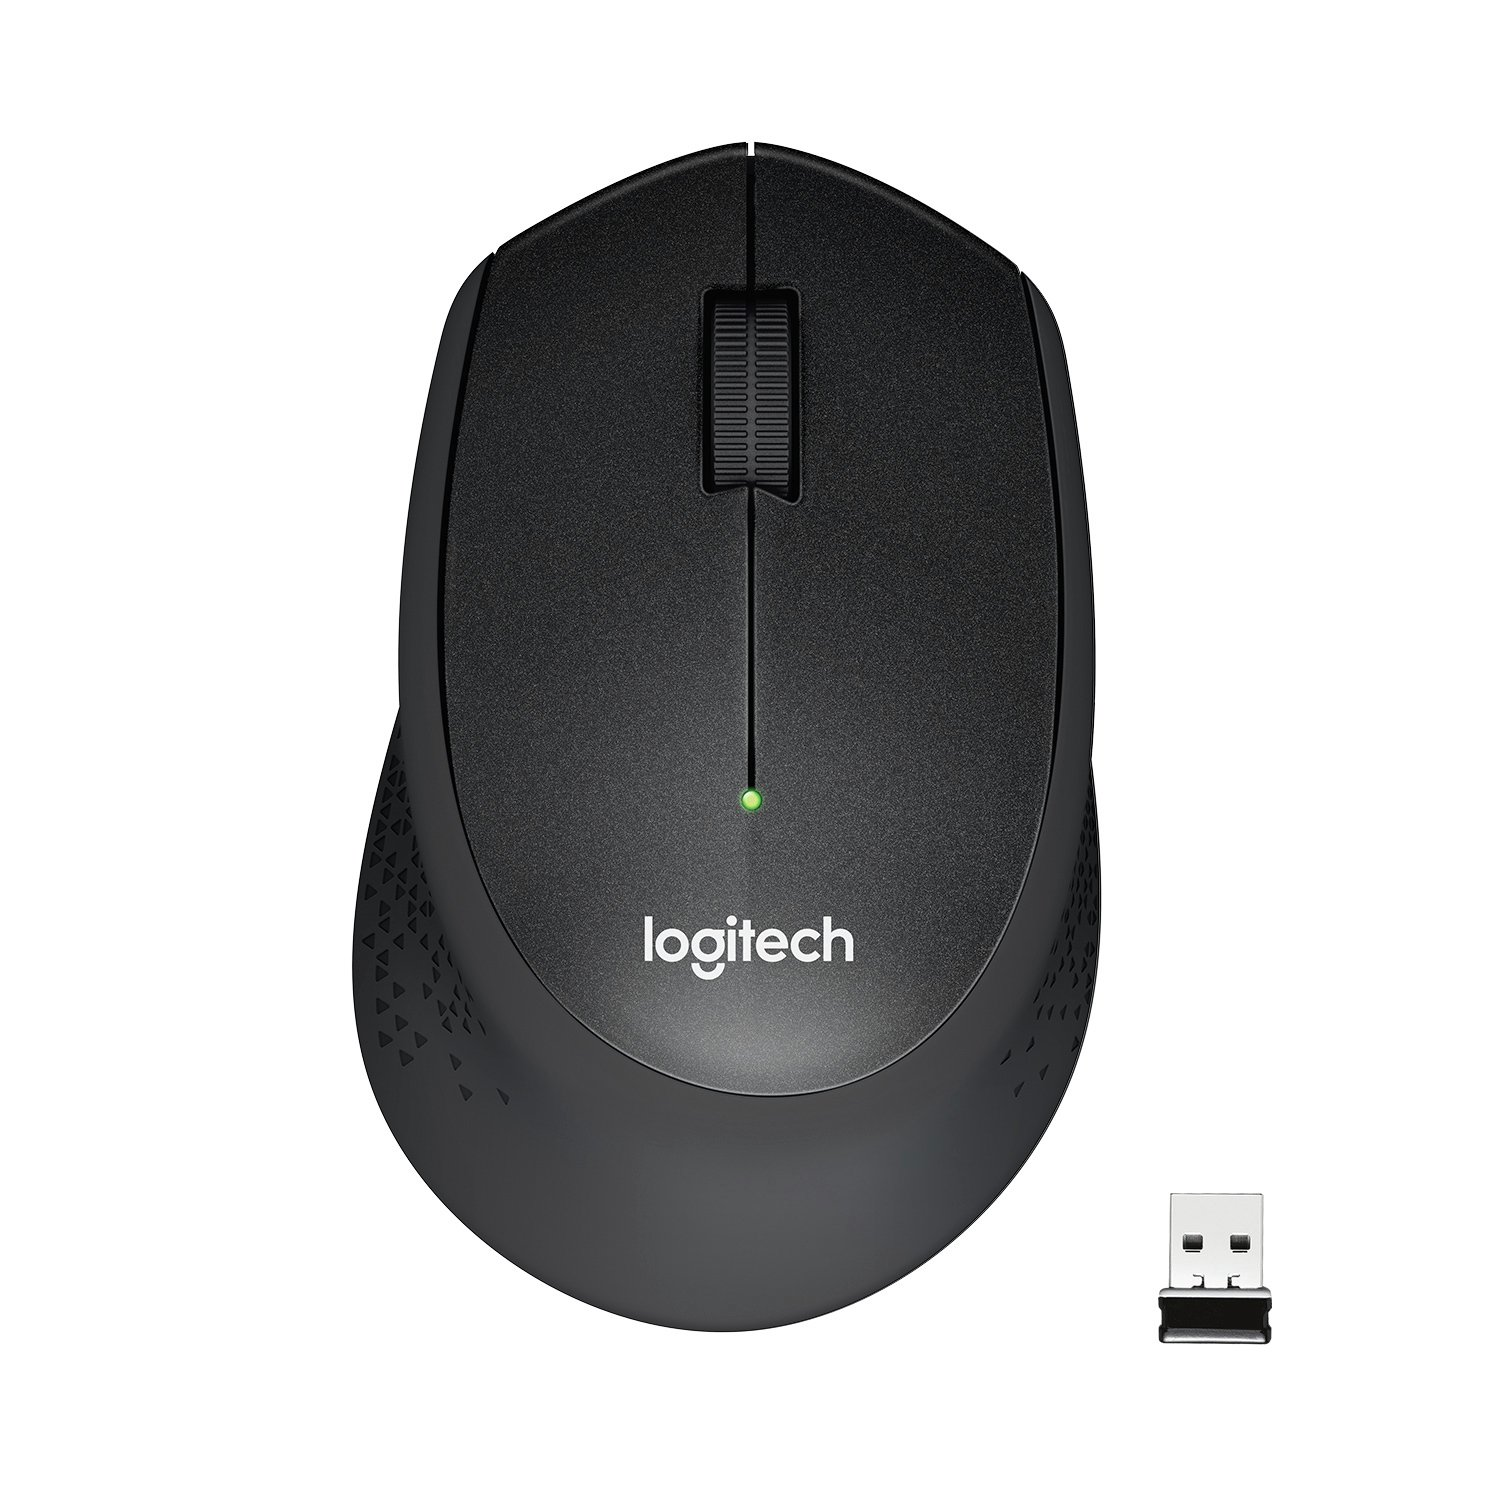 Logitech M330 Wireless Mouse review